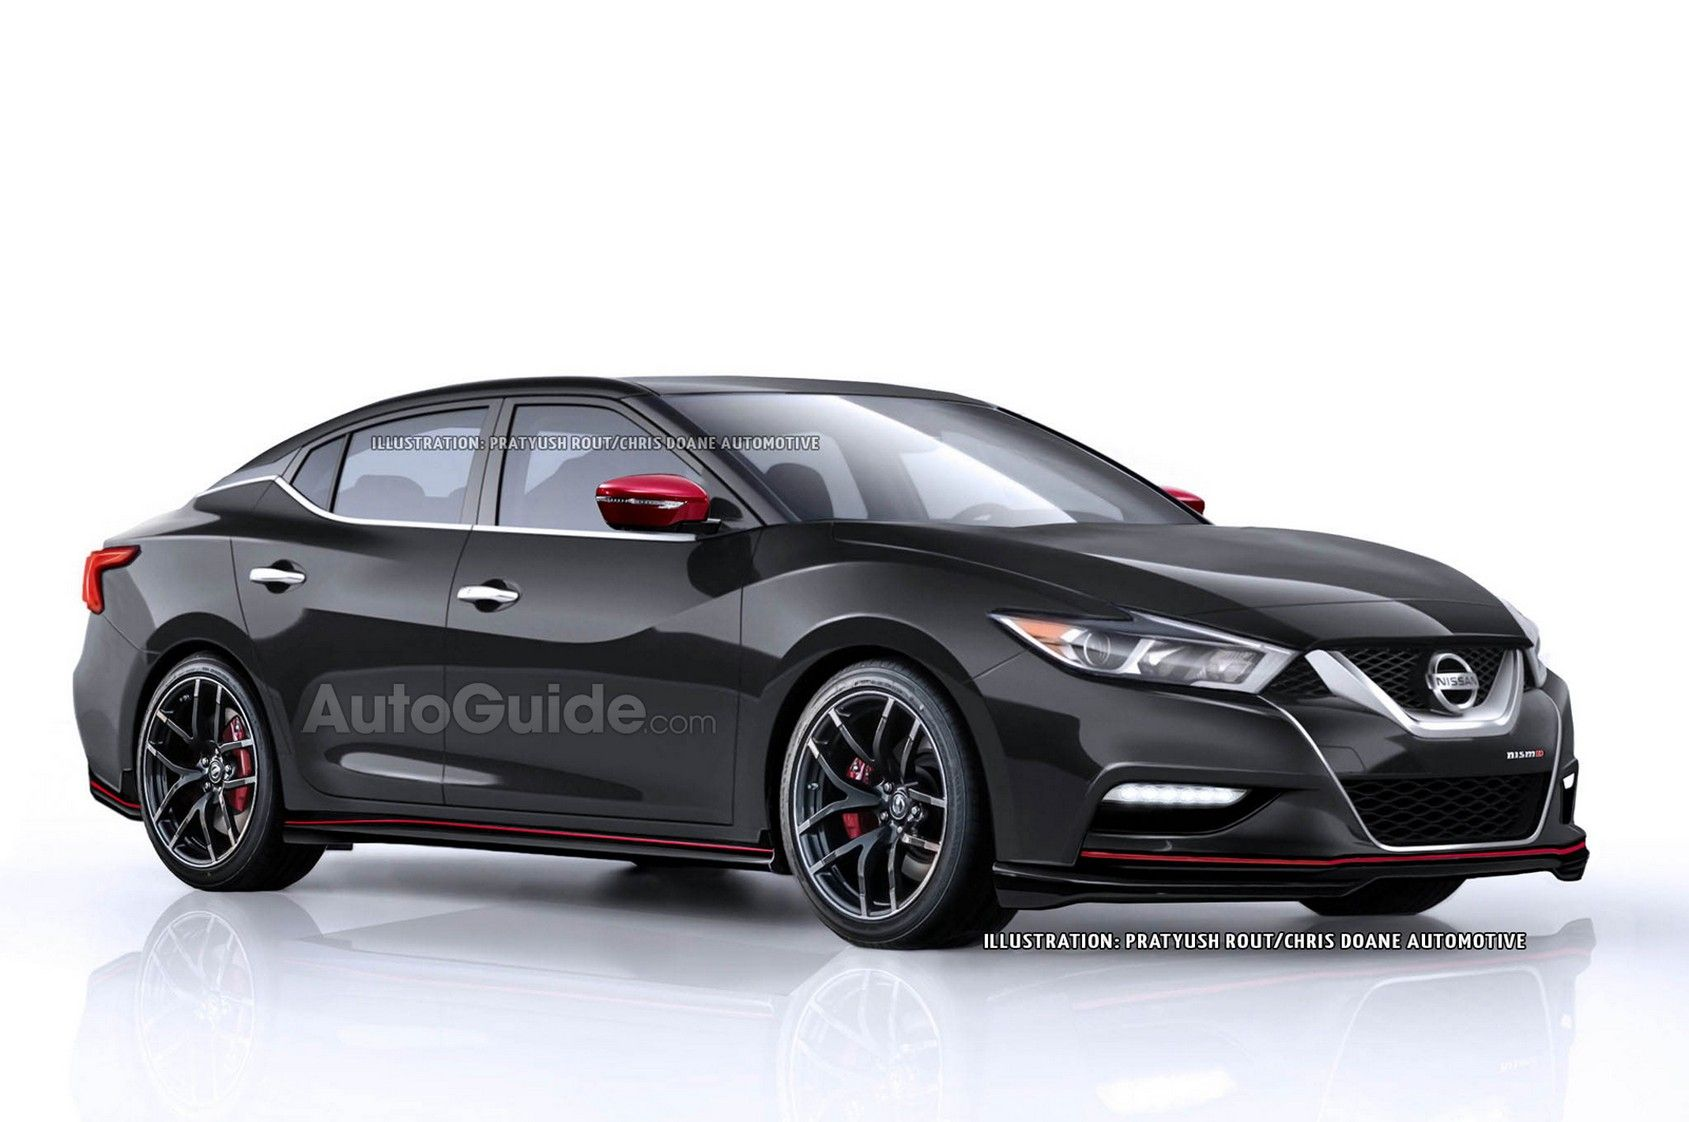 2020 Nissan Maxima Nismo Price Concept 2020 Nissan Maxima Is A Sport Cars Prepared For Some Development In Up And Coming Models This Auto Could Get New St